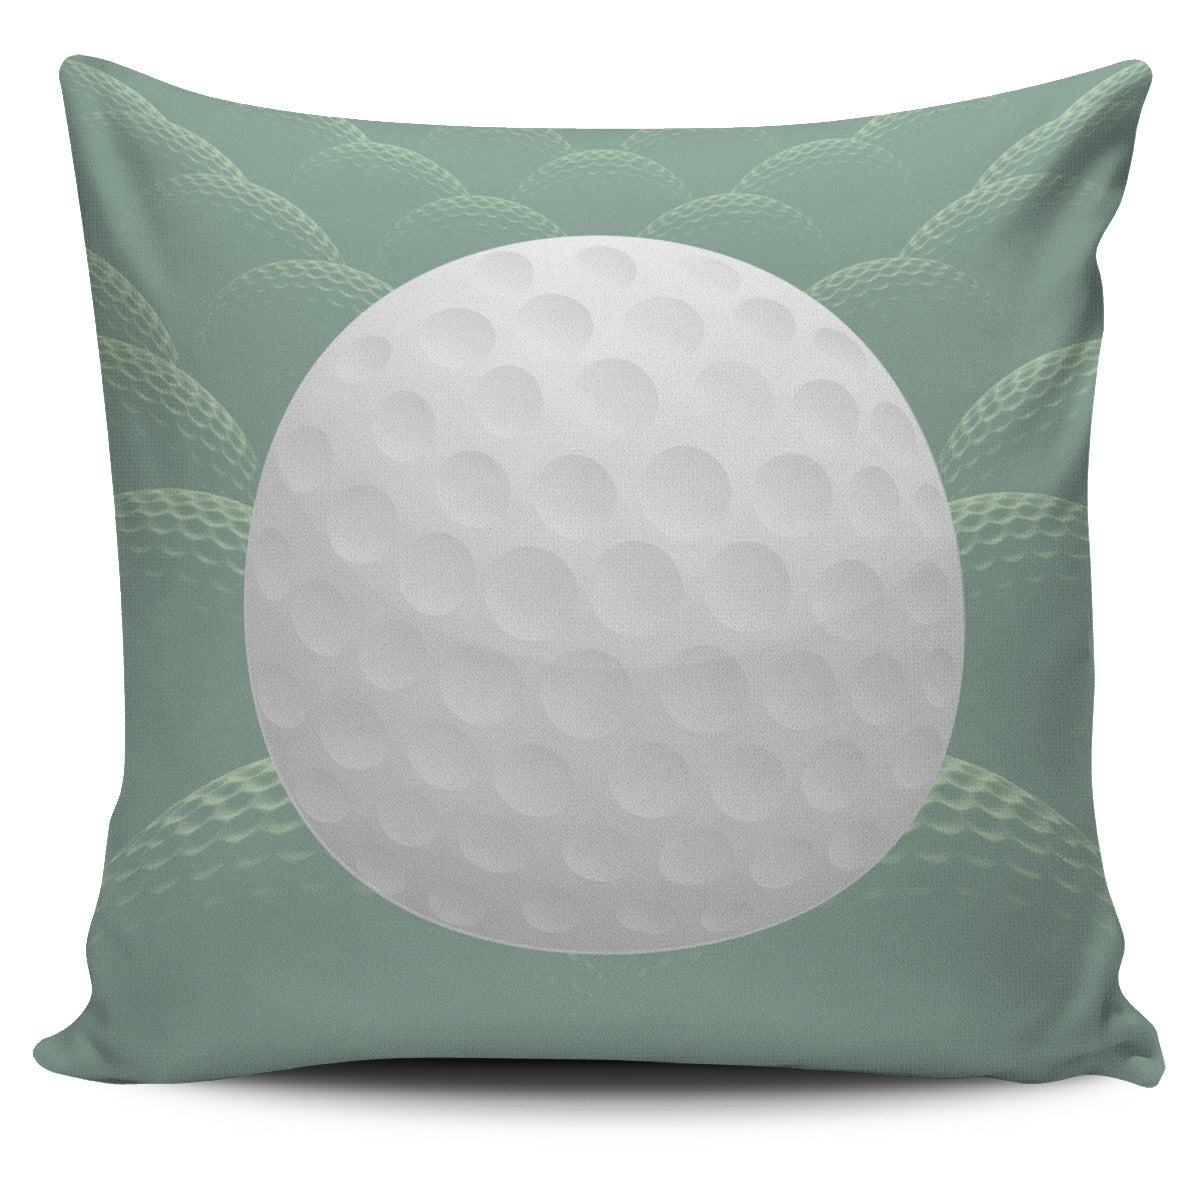 Golf Green Pillow - Fashion Factorys